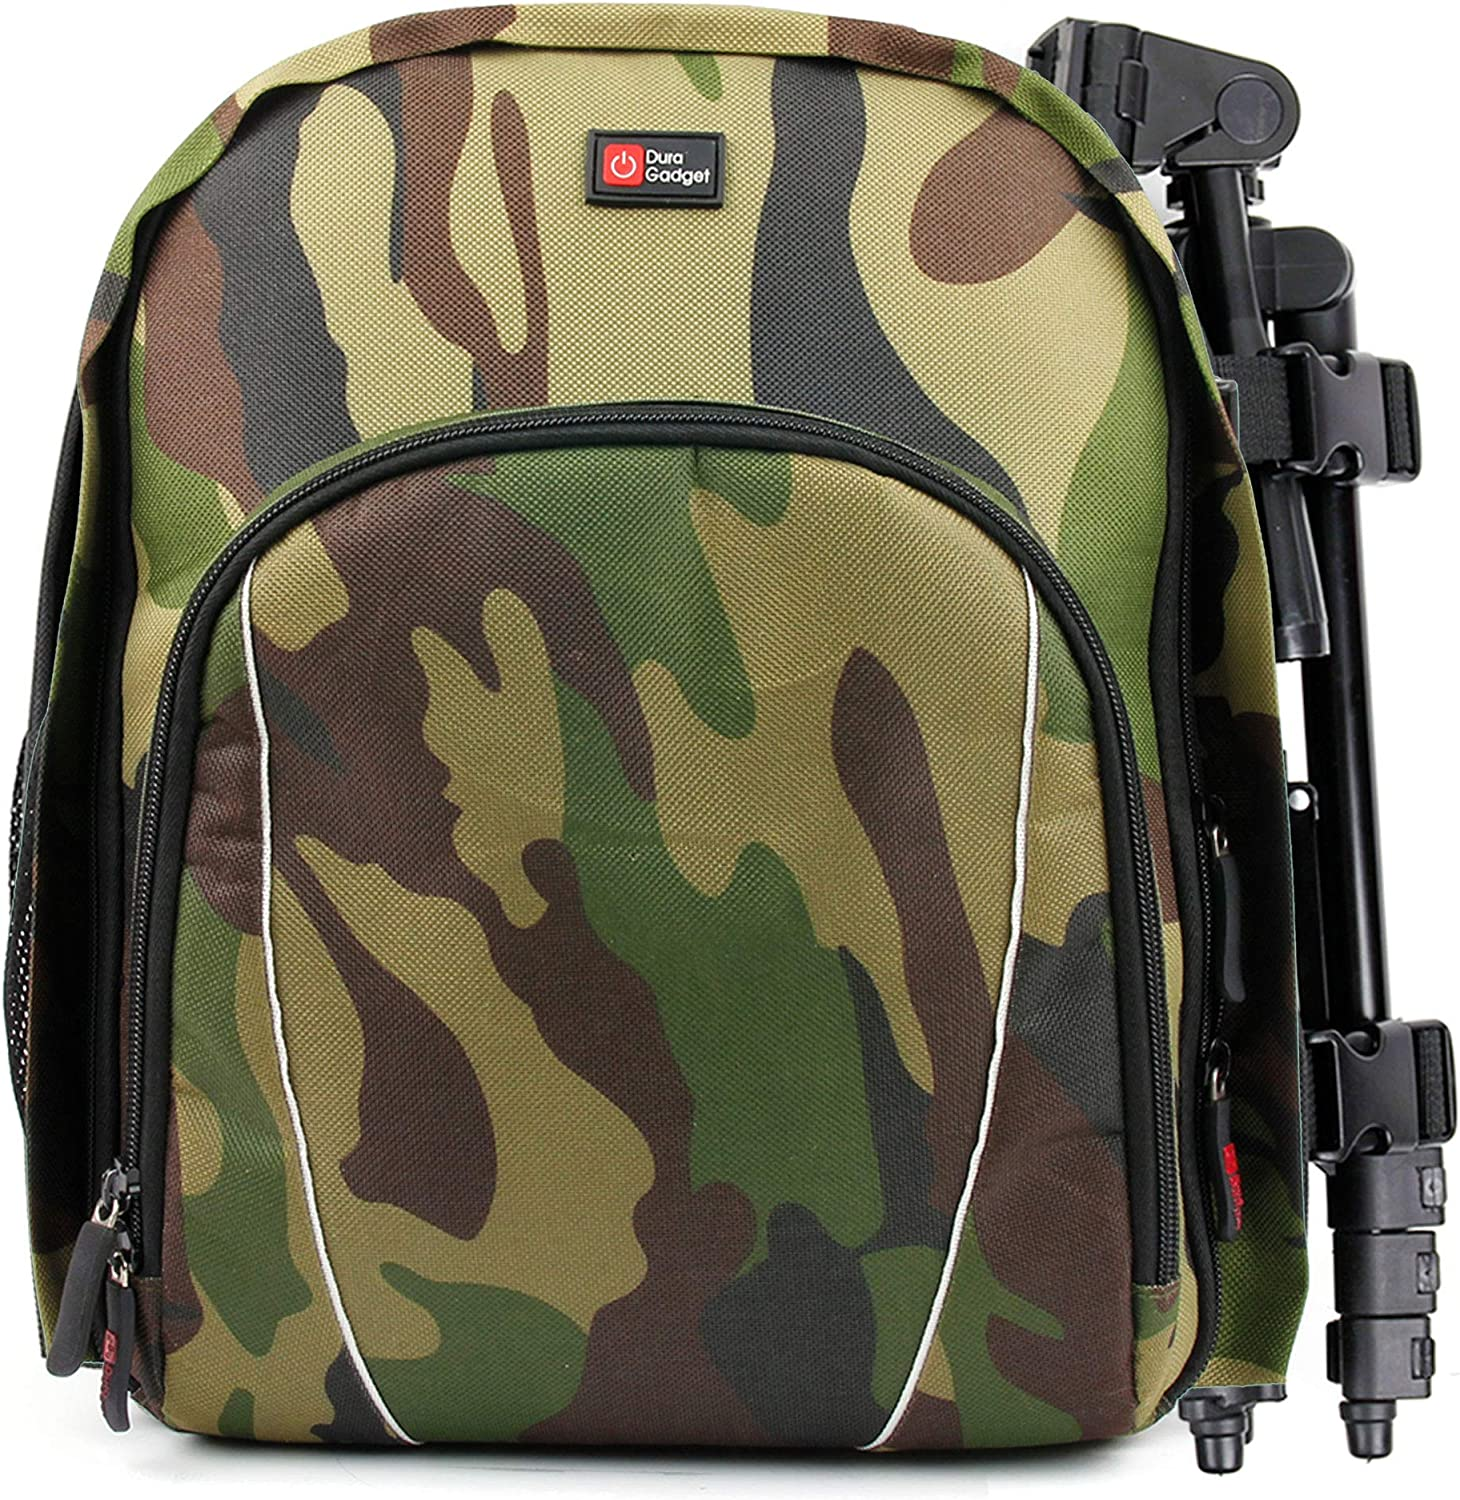 DURAGADGET Camouflage Water-Resistant Max 40% Rapid rise OFF Customizable Backpack with